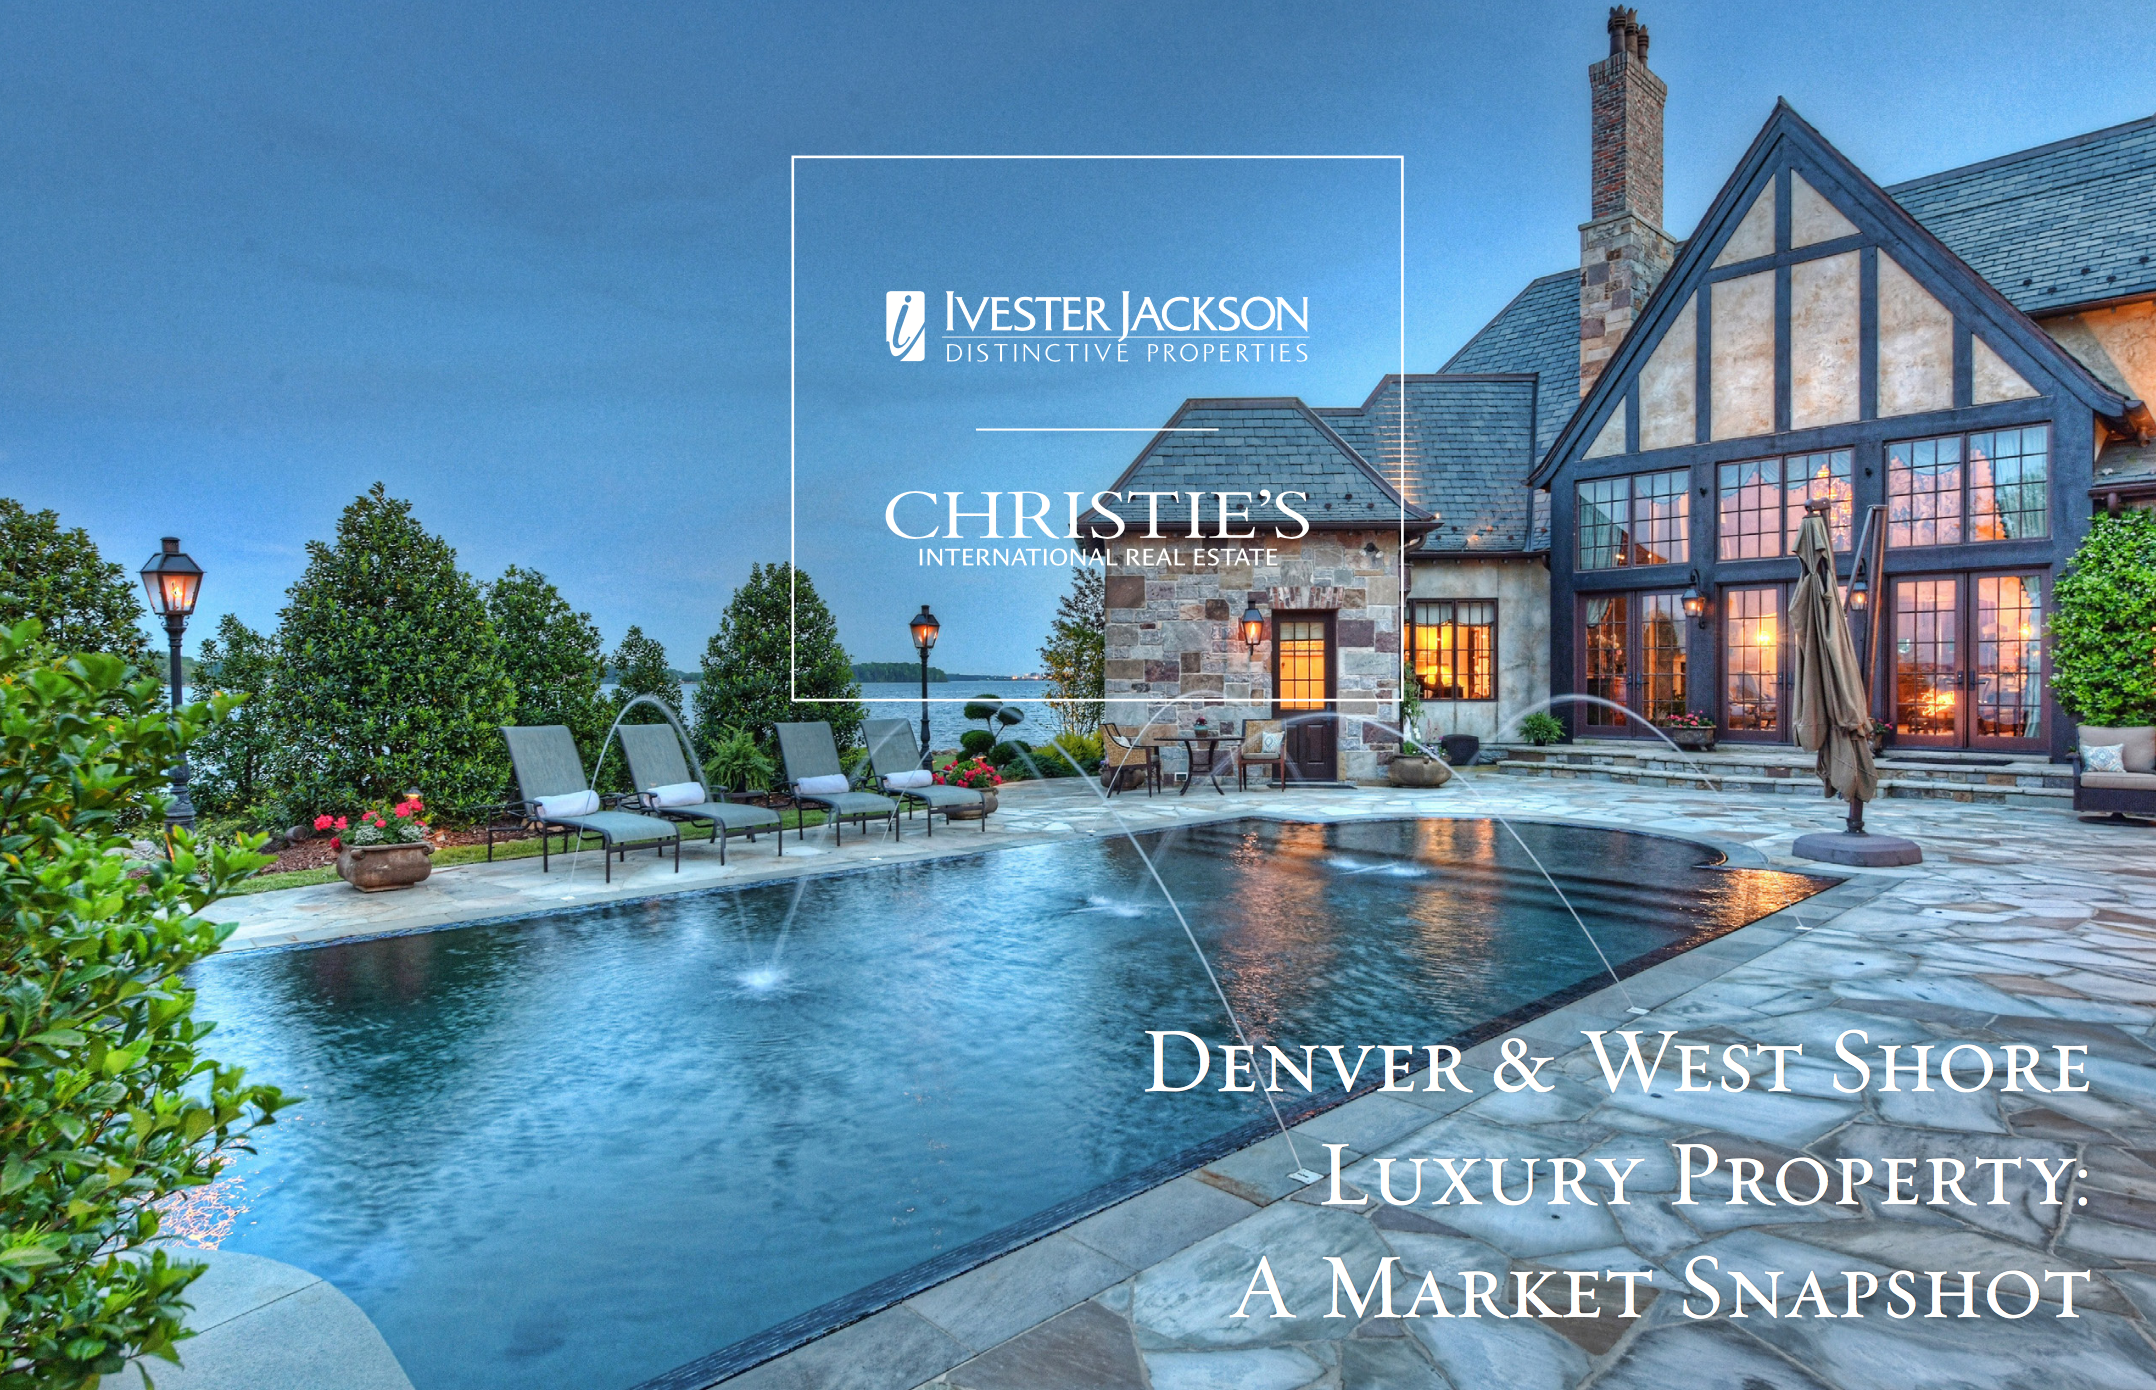 Denver & West Shore | Luxury Property: A Market Snapshot